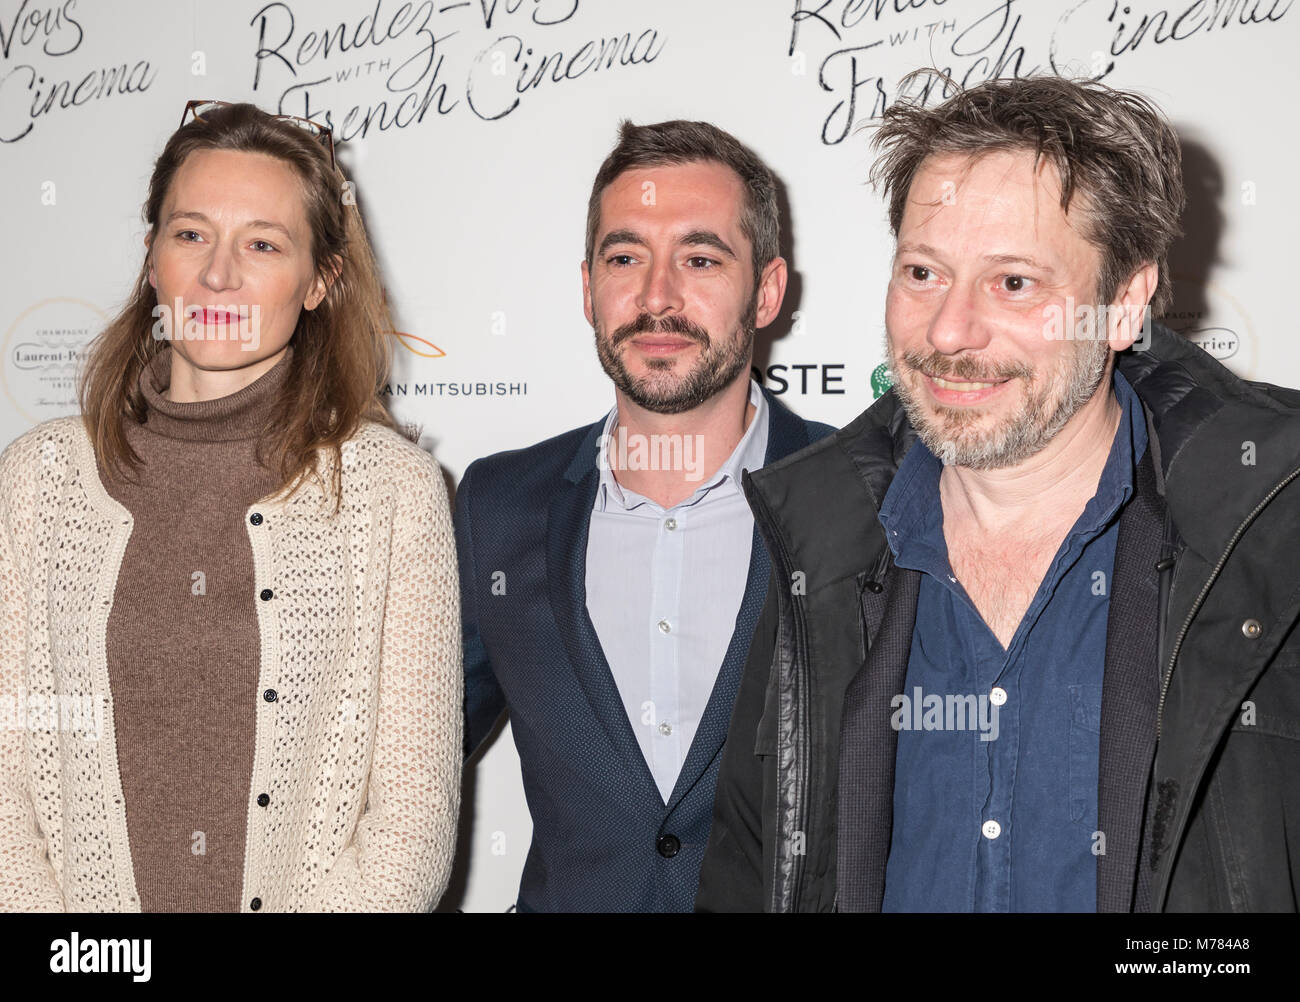 New York, NY, USA - March 8, 2018: (L-R) Marine Francen, Xavier Legrand, Mathieu Amalric attend Renez-Vous with - Stock Image